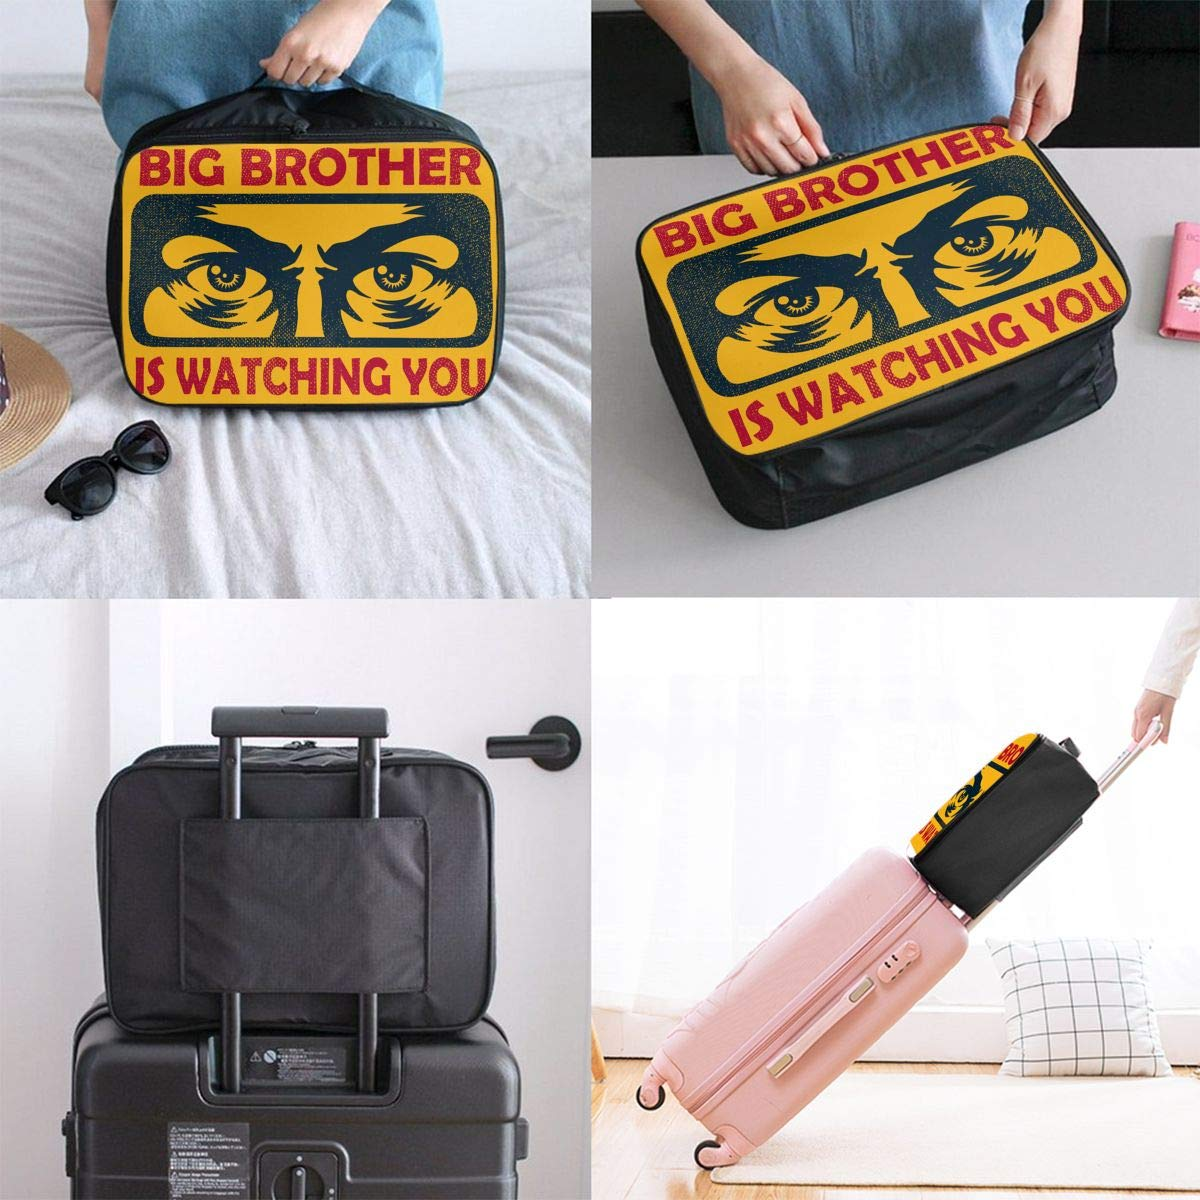 Travel Duffel Bag Waterproof Lightweight Large Capacity Luggage Bag Big Brother Is Watching You Portable Handbag For Travel Camping Sport White